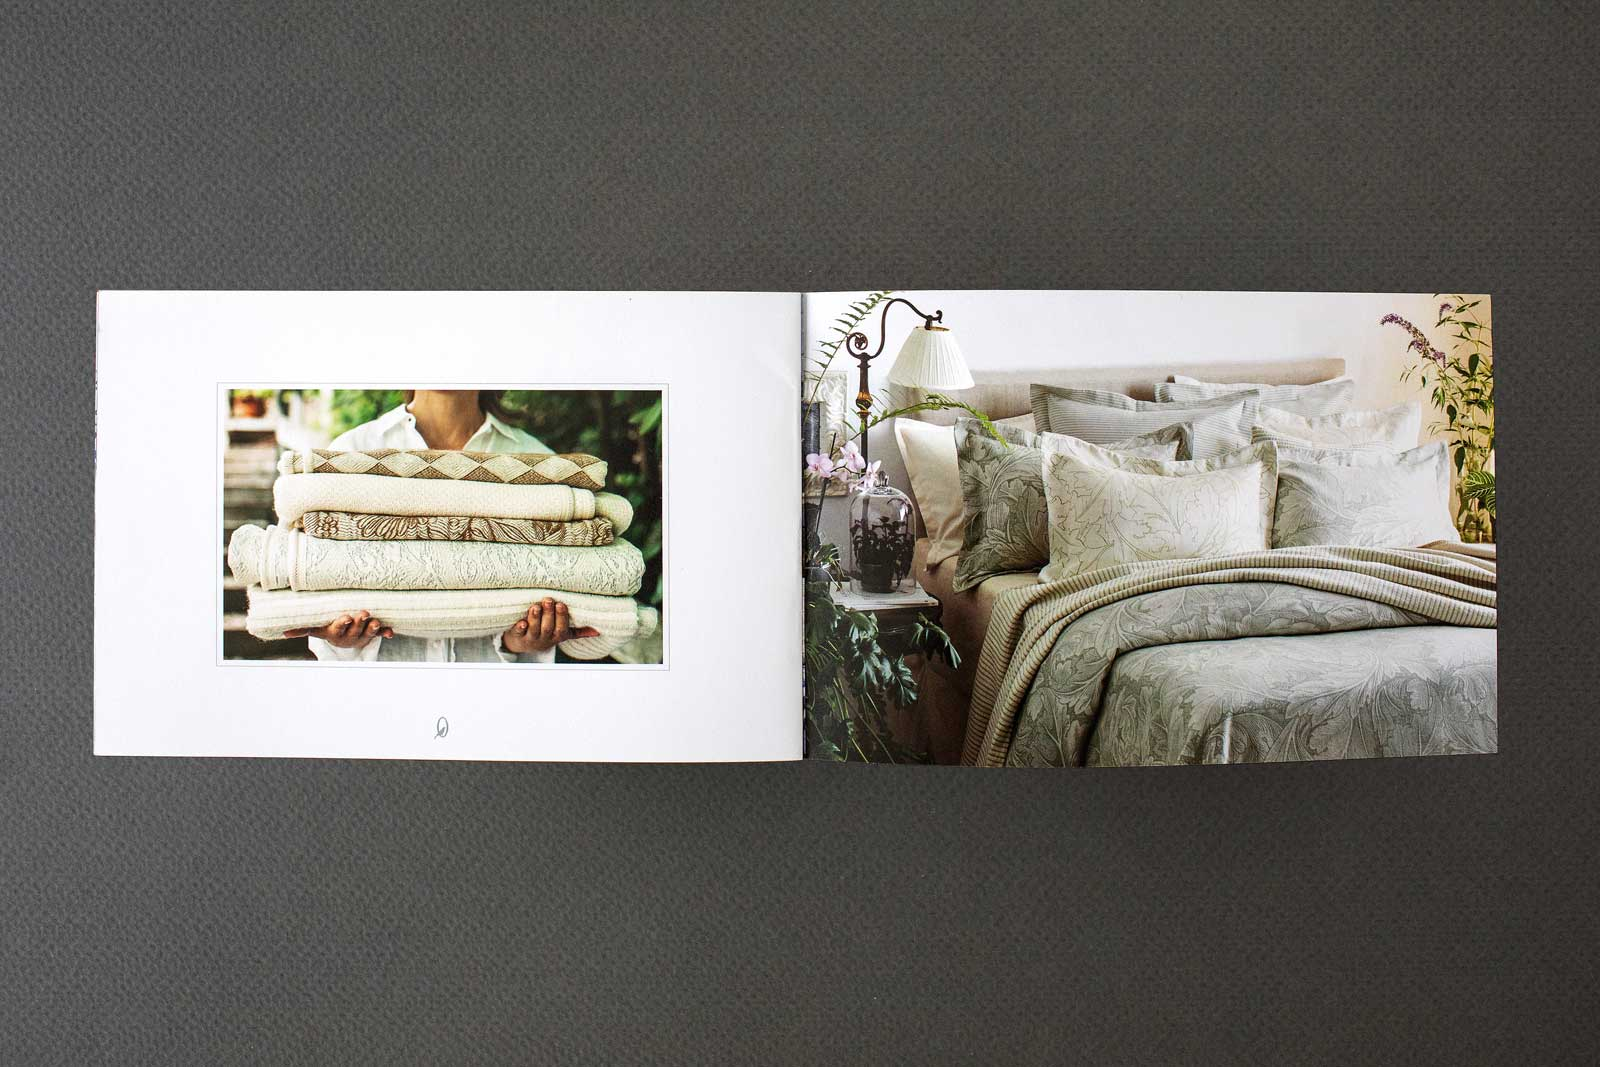 Catalog spreads for The Oriole Mill, showing a bed with woven earth-tone comforter and pillows on bed. Image showing woman holding throw blankets.